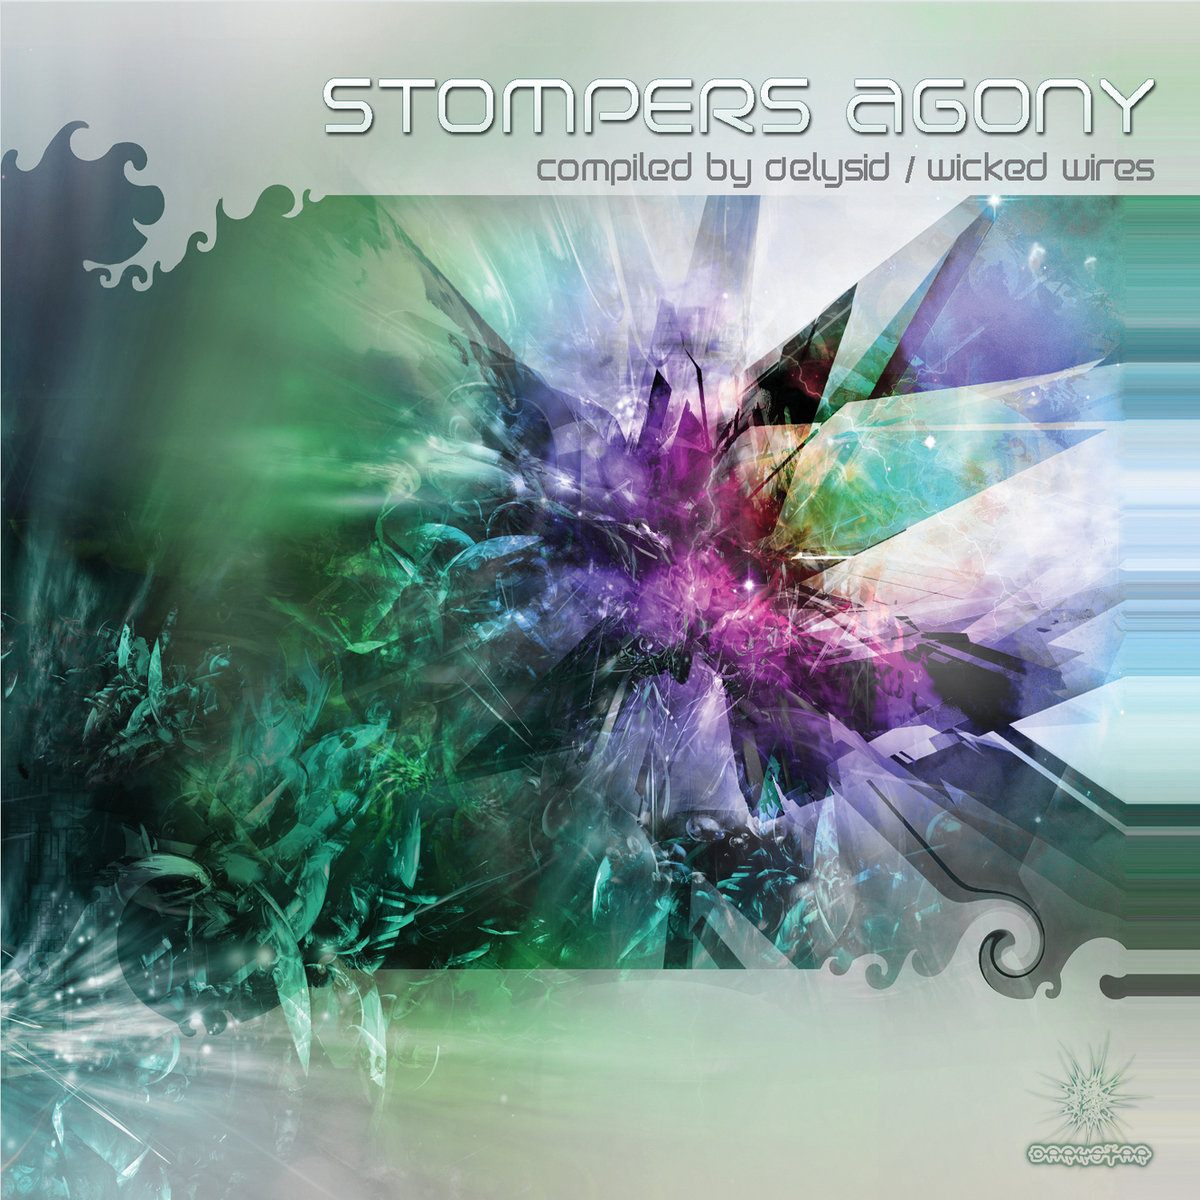 Brain Hunters - Genetic Poison @ 'Various Artists - Stompers Agony (Compiled by Delysid / Wicked Wires)' album (electronic, goa)